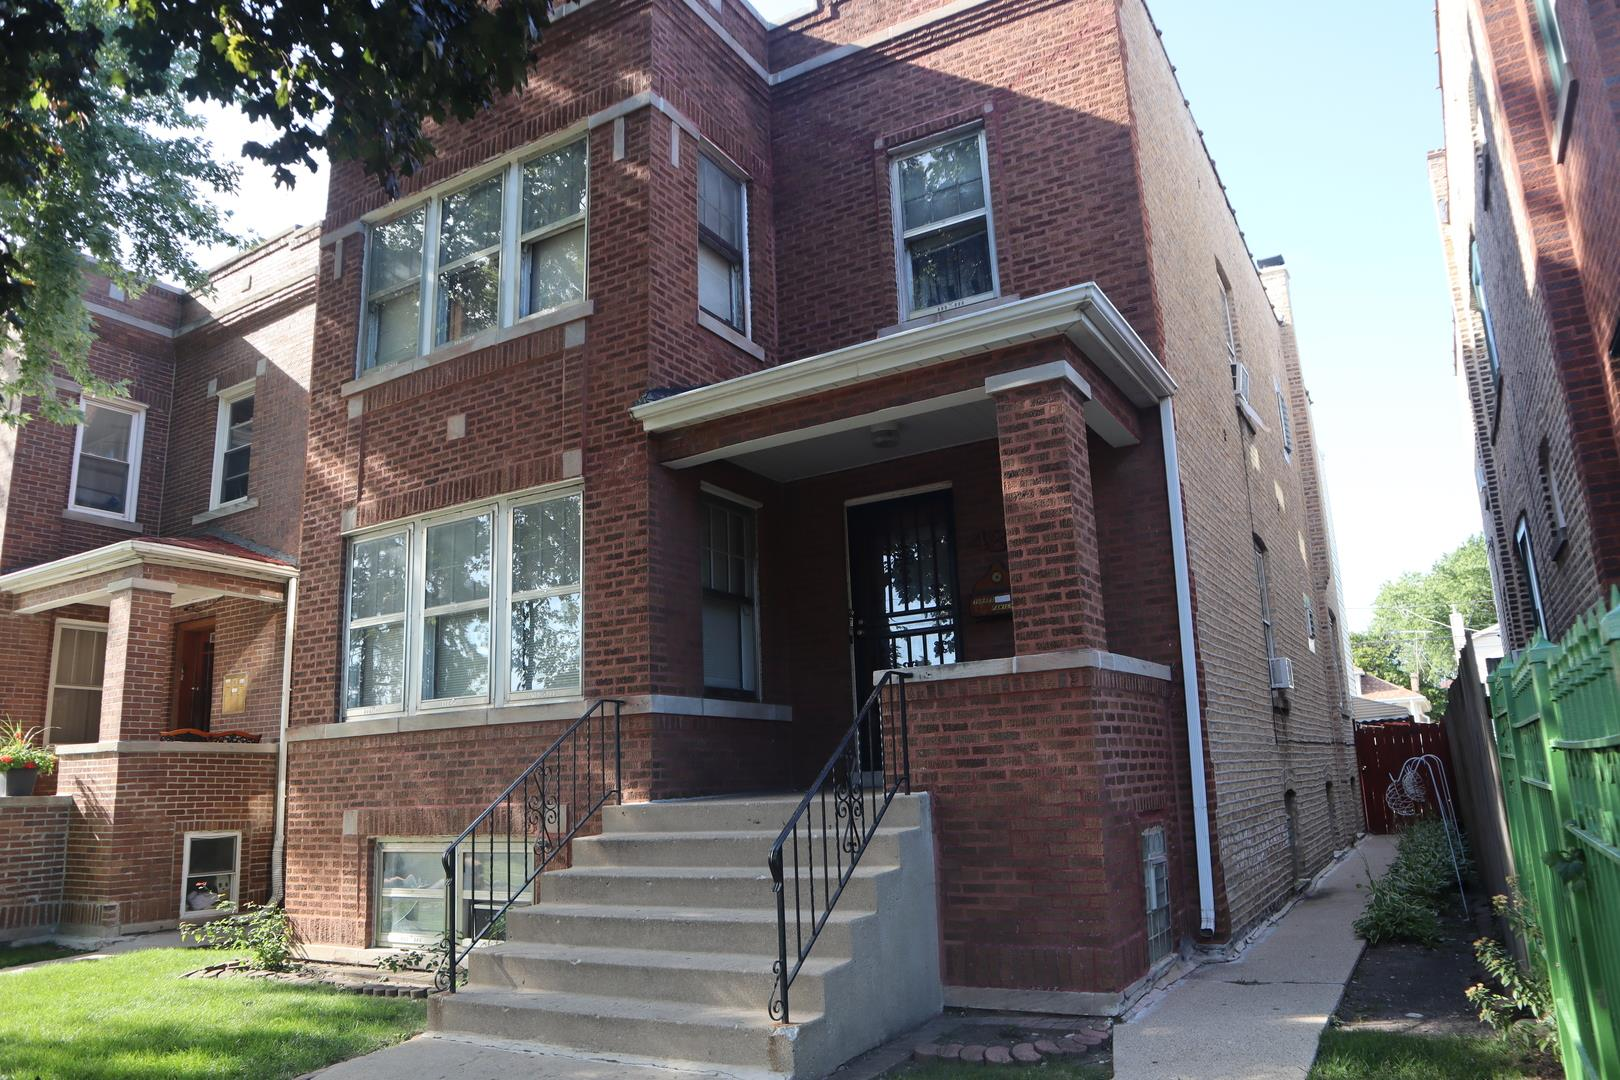 4854 W Newport Avenue, Chicago, IL 60641 - #: 10840820